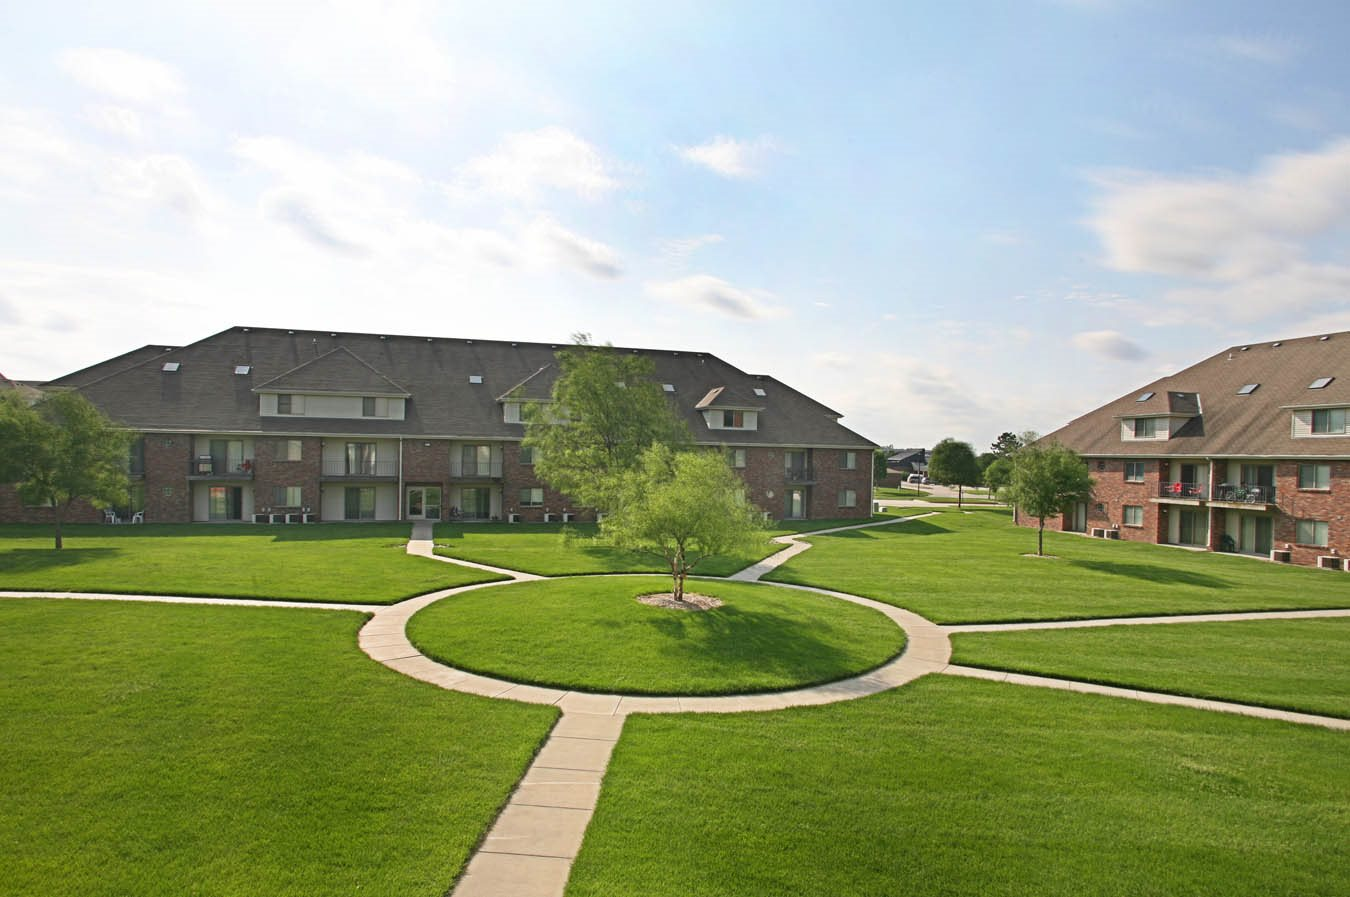 Spacious grounds with walking paths, lush green grass and trees, surrounded by brick apartment buildings at Fountain Glen Apartments in Lincoln, NE.